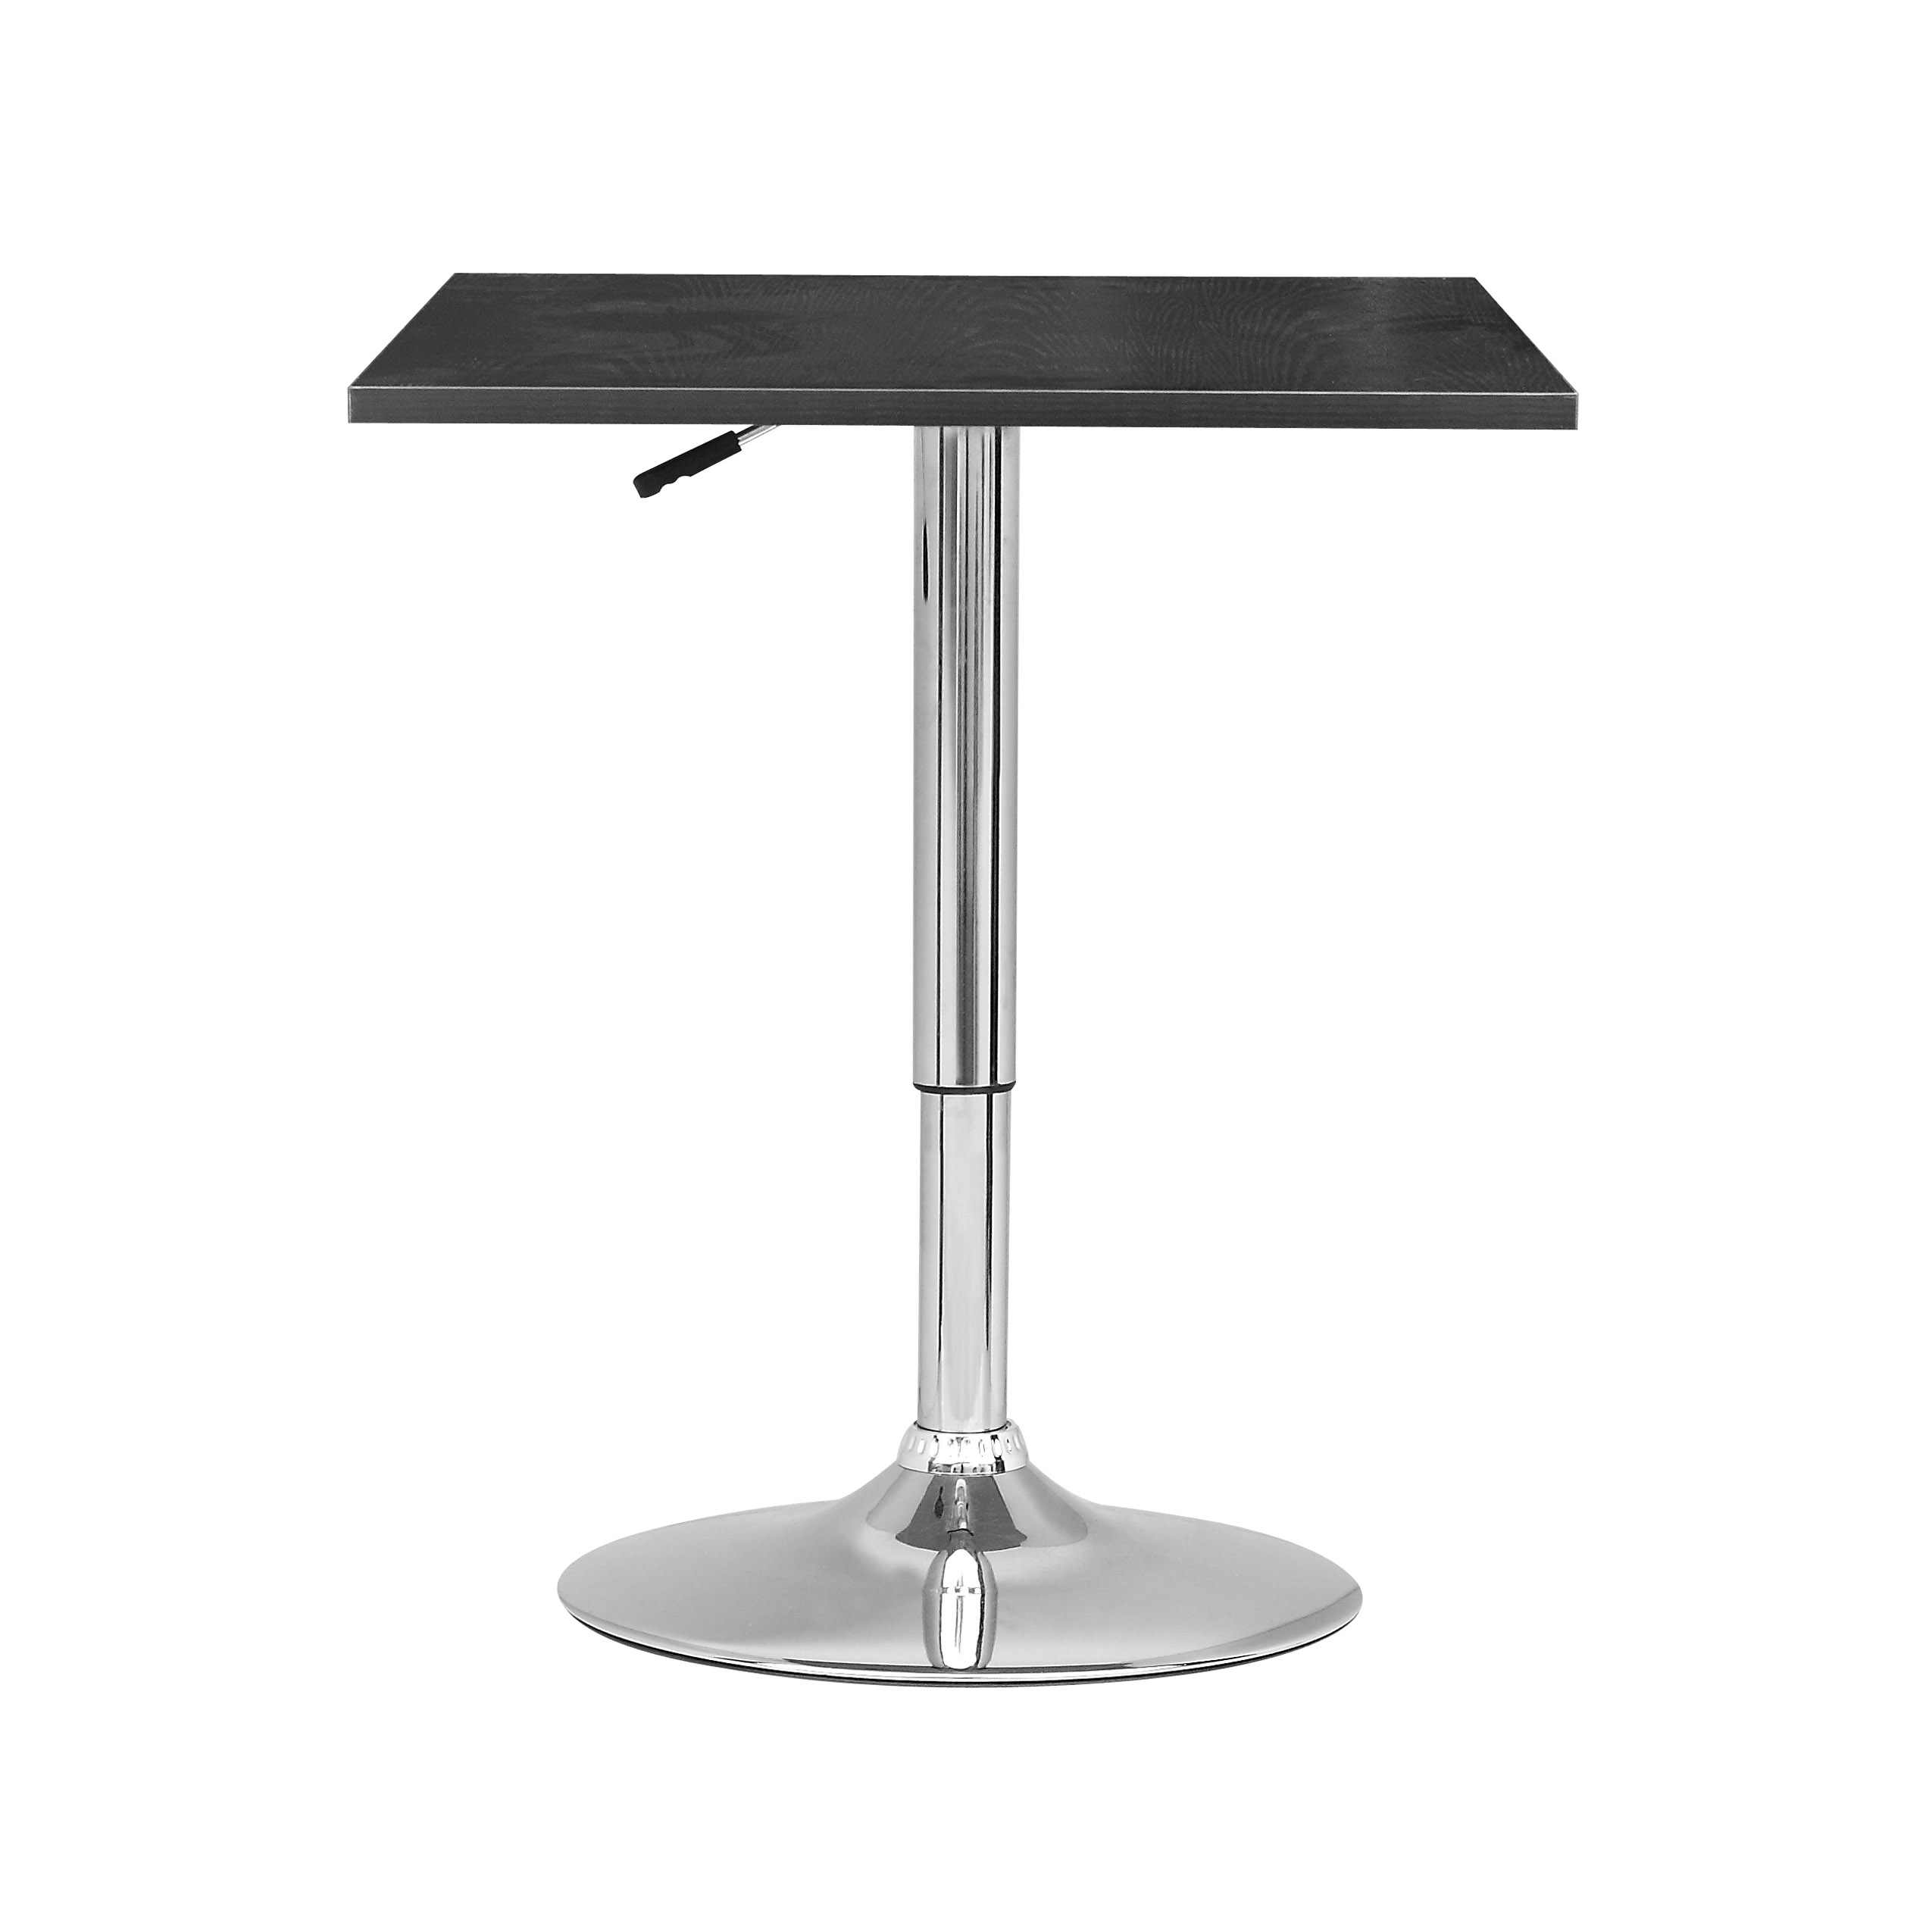 Merveilleux CorLiving Adjustable Height Square Bar Table